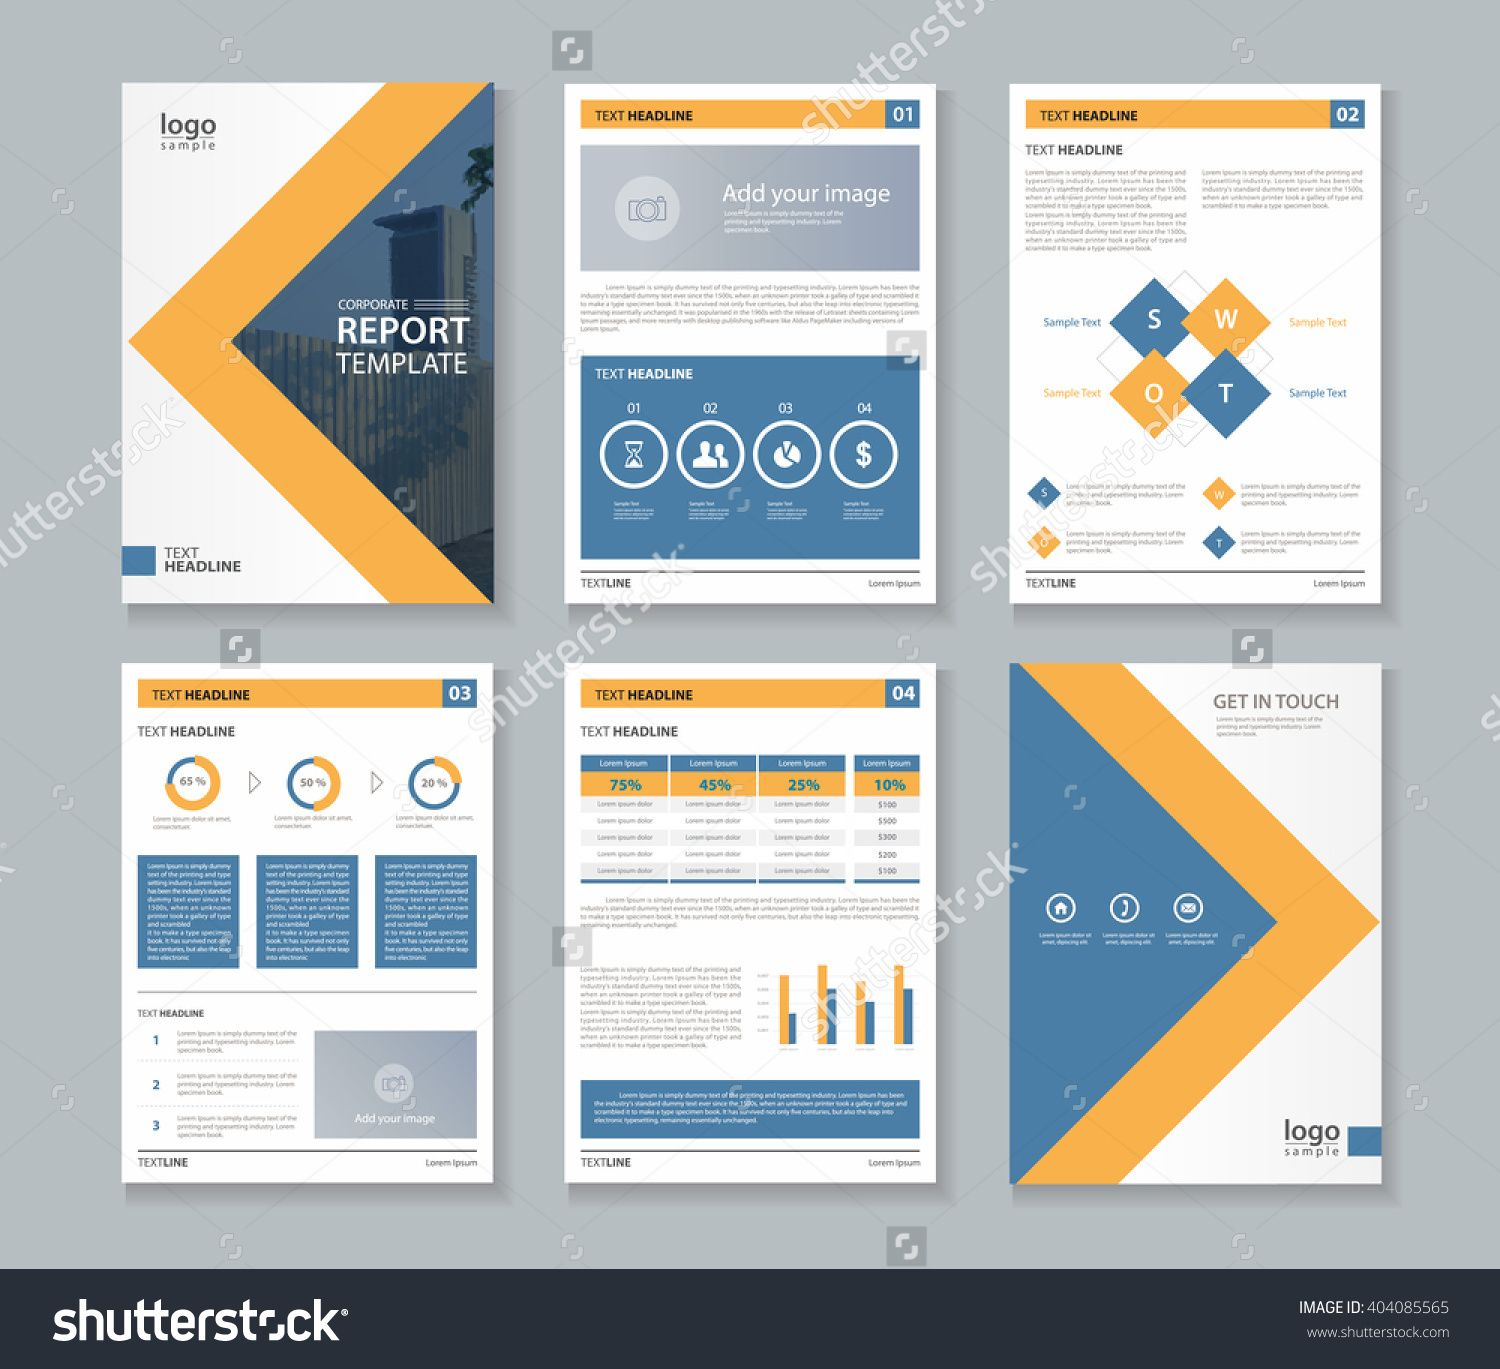 Pin by hanya cha on printlayout in 2018 pinterest company brochure layout flyer layout corporate profile business profile report design template friedricerecipe Choice Image